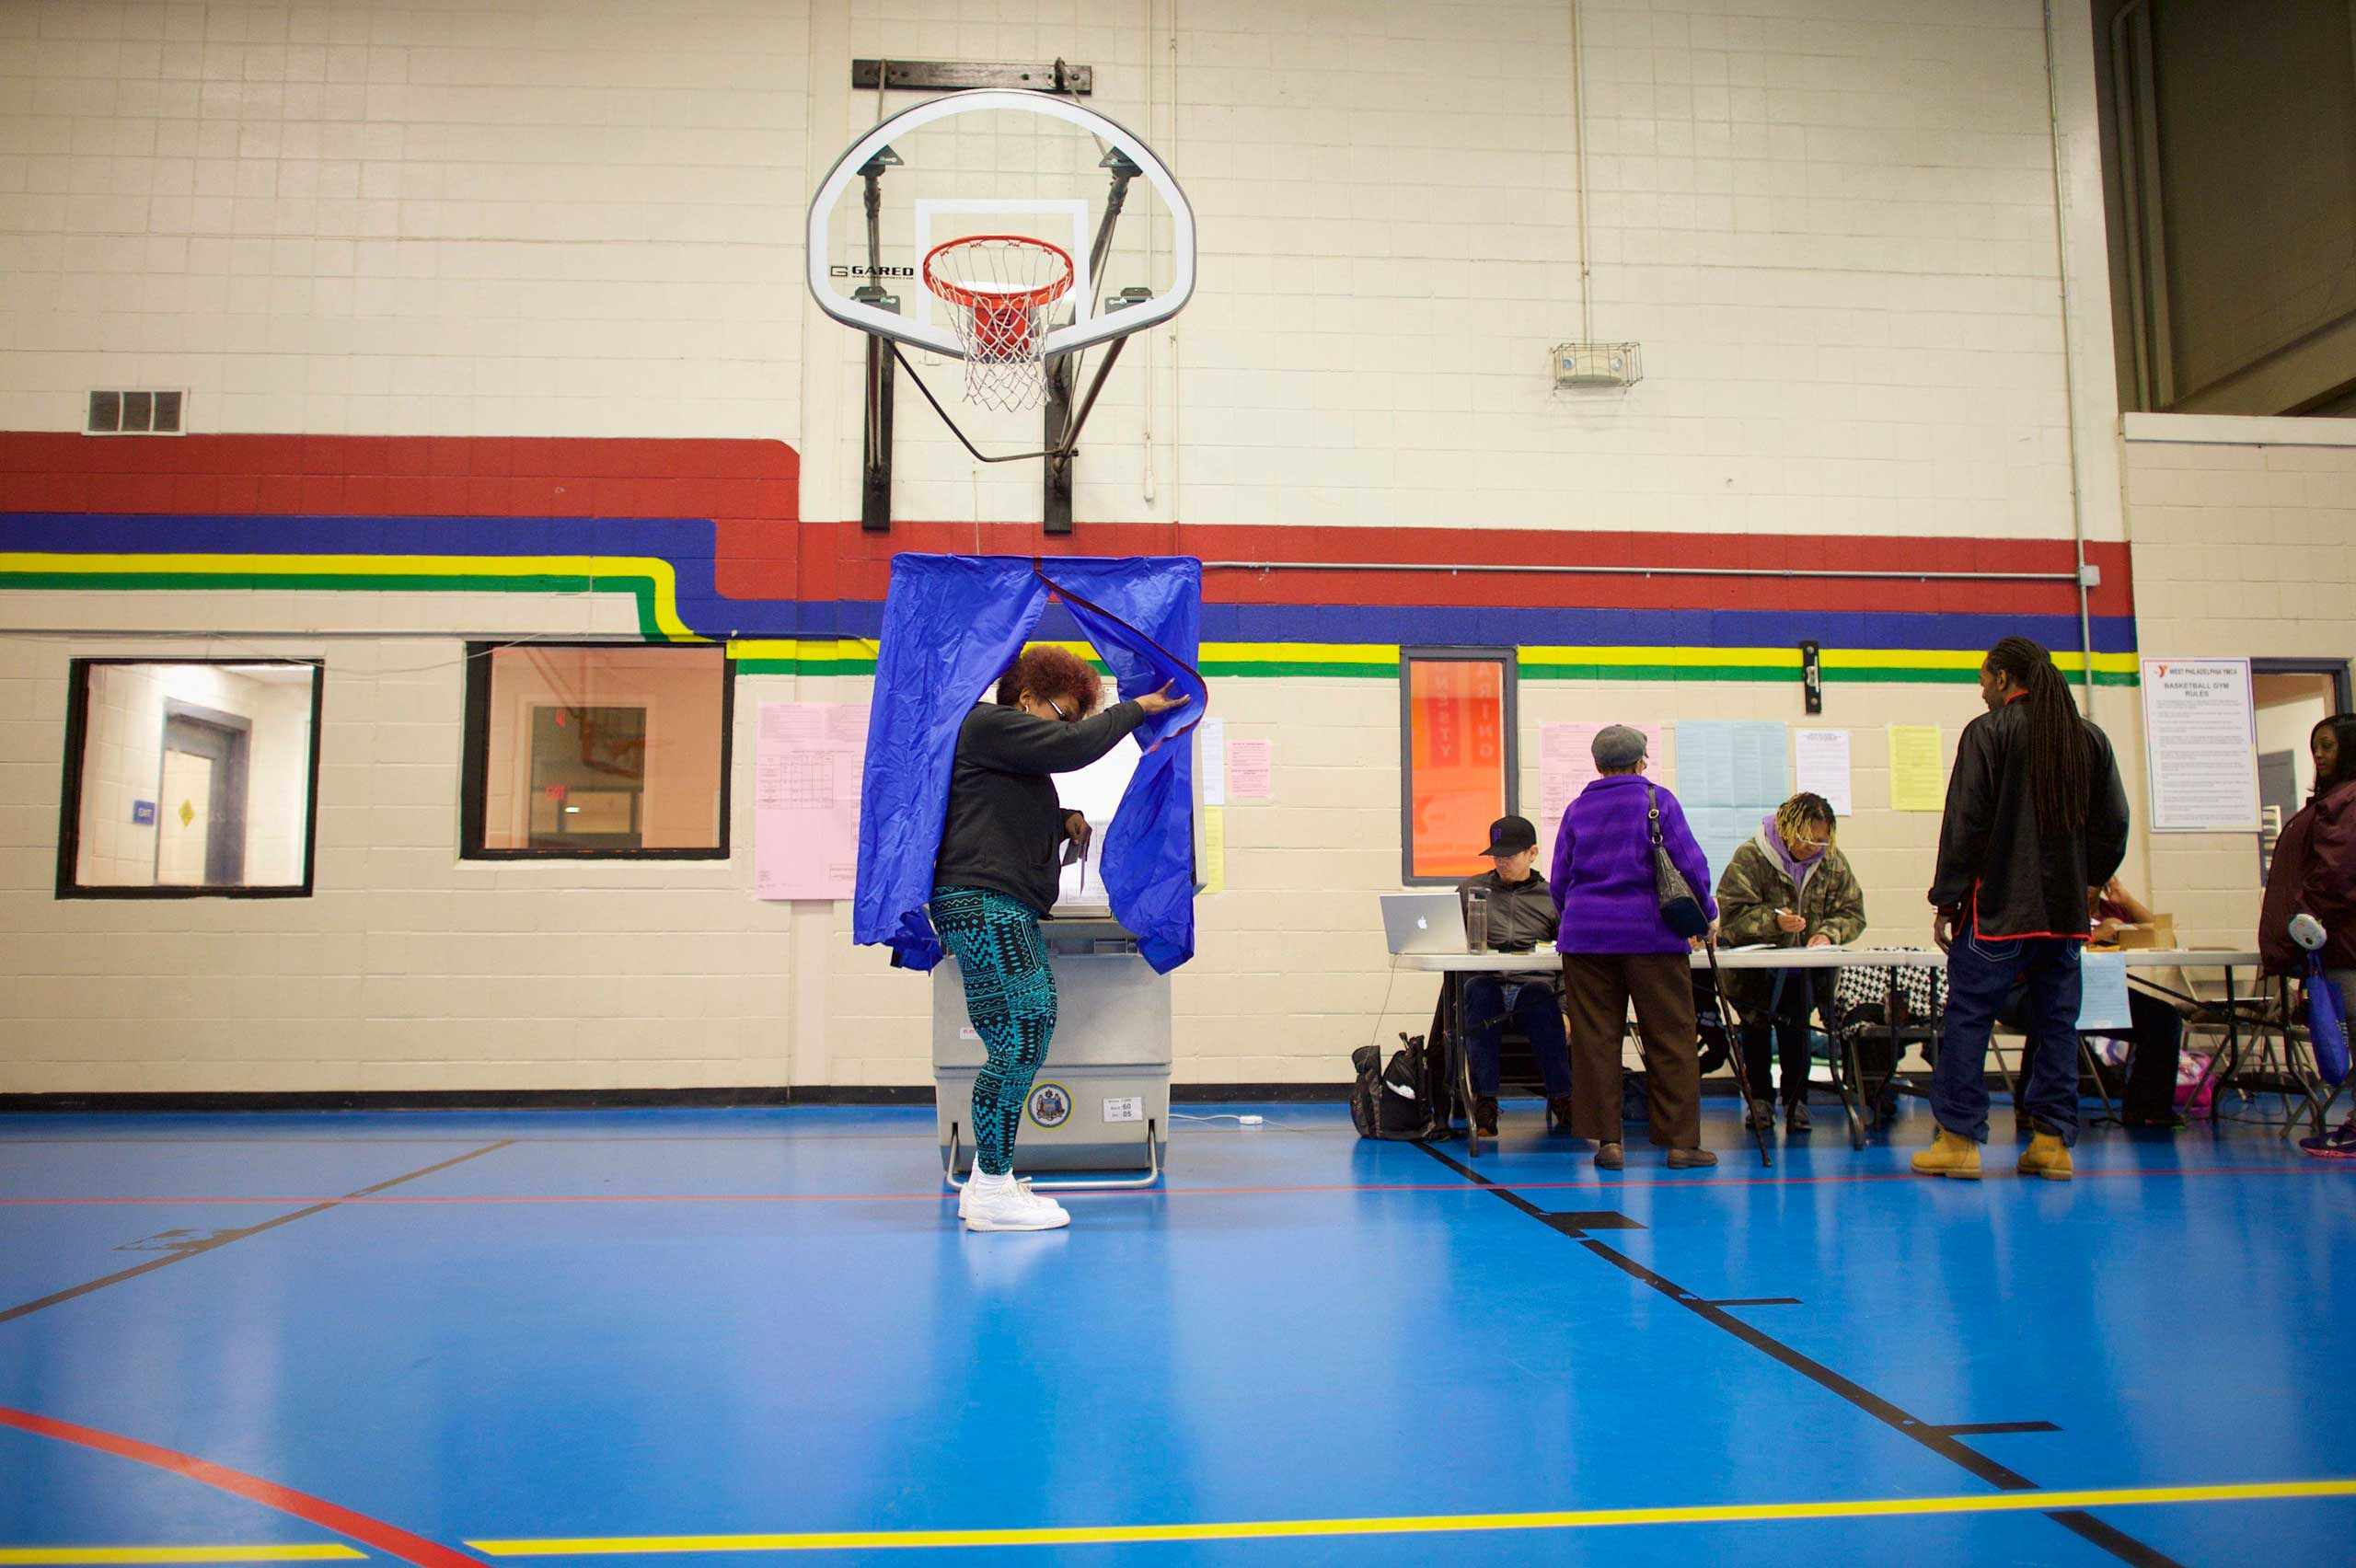 Deborah Brown, 60, emerges from the voting booth after casting her ballot at the West Philadelphia YMCA in Philadelphia on Nov. 4, 2014.